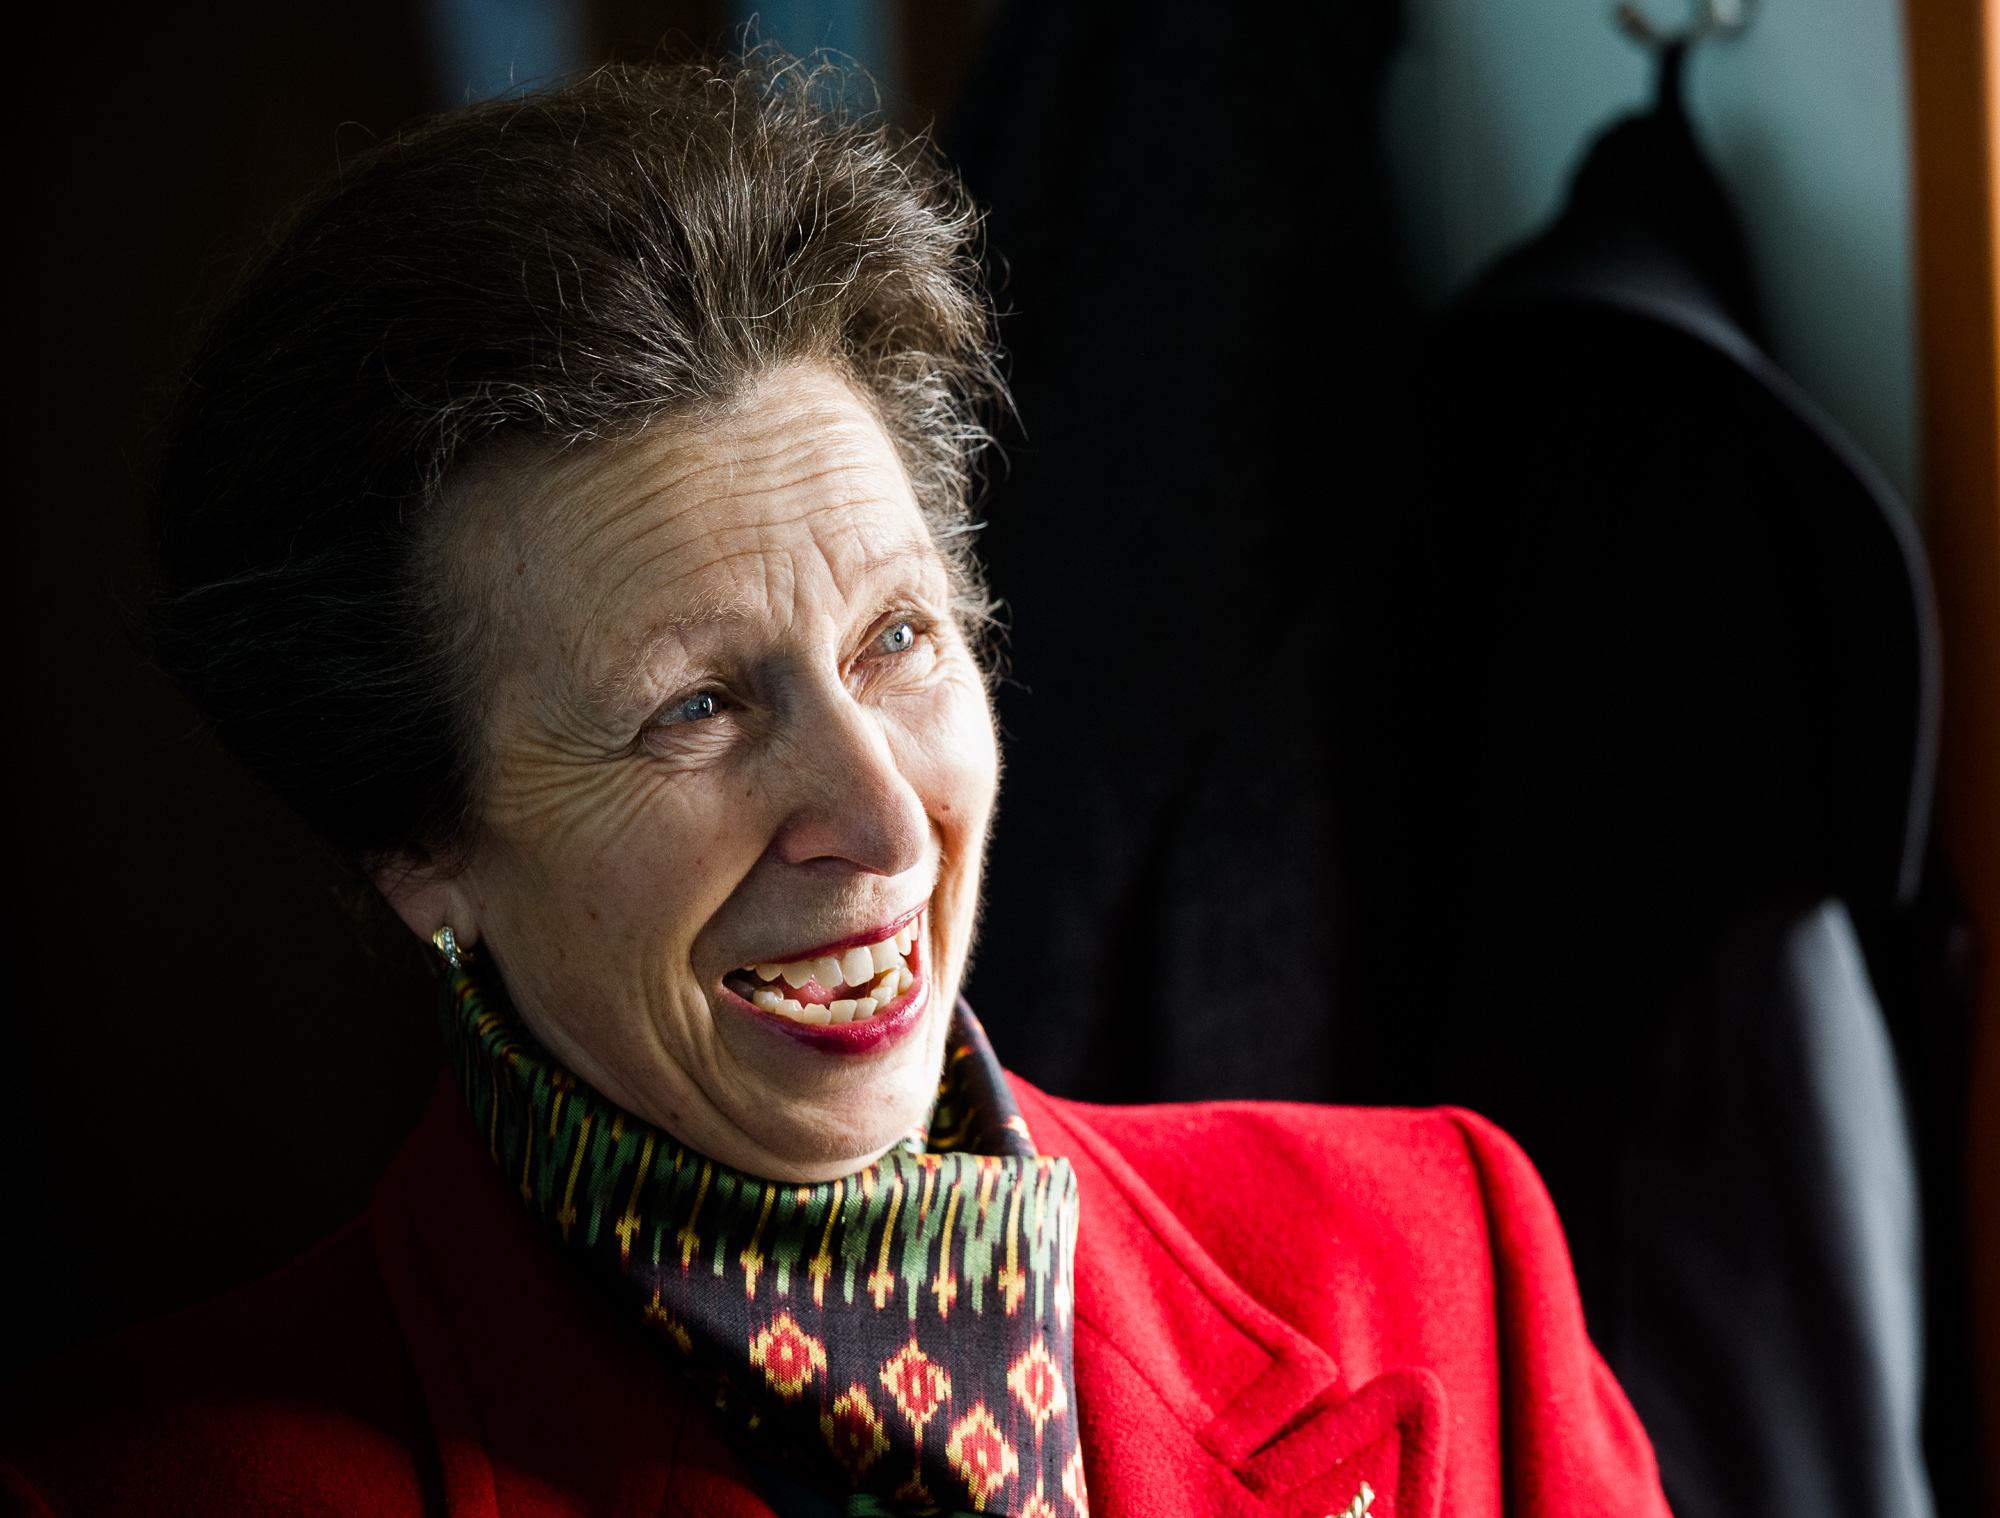 princess_anne-4.jpg